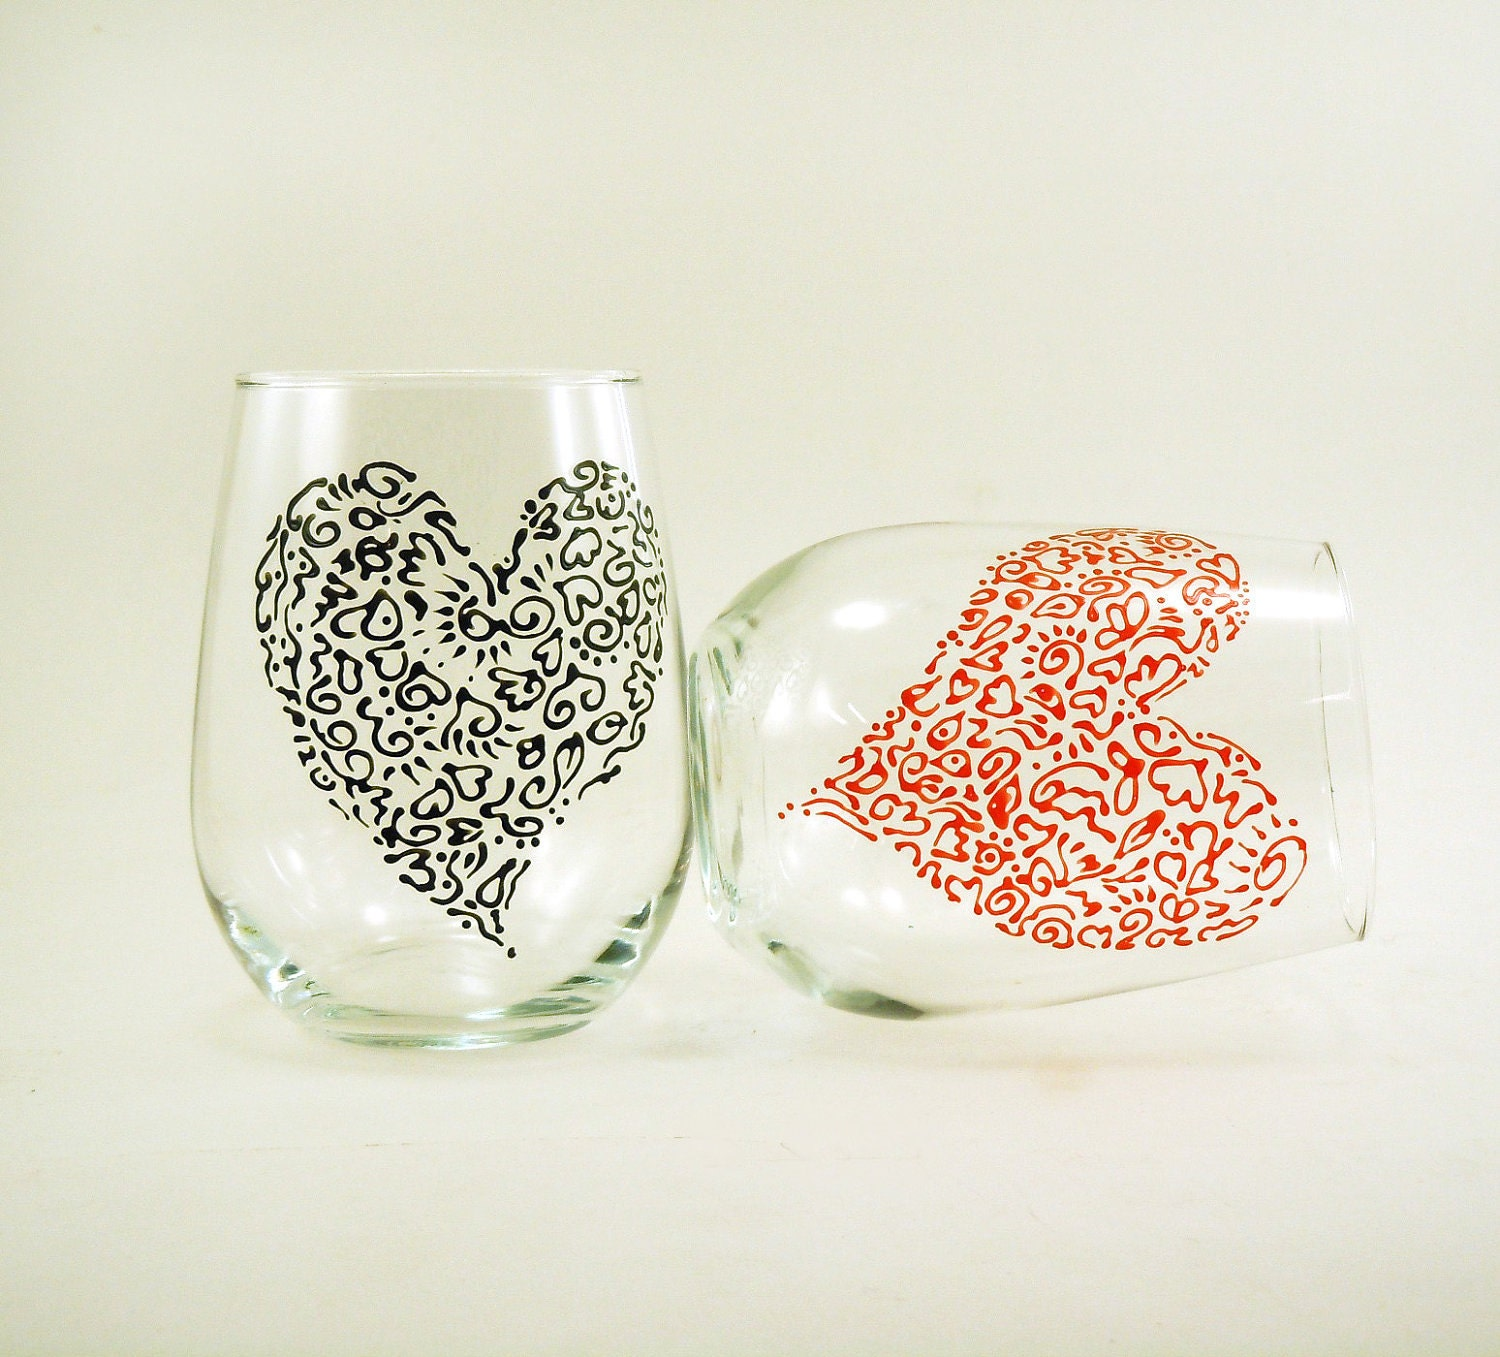 Valentine stemless wine glasses - Set of 2 - Hand painted white wine glasses - VALENTINE SALE, use coupon below